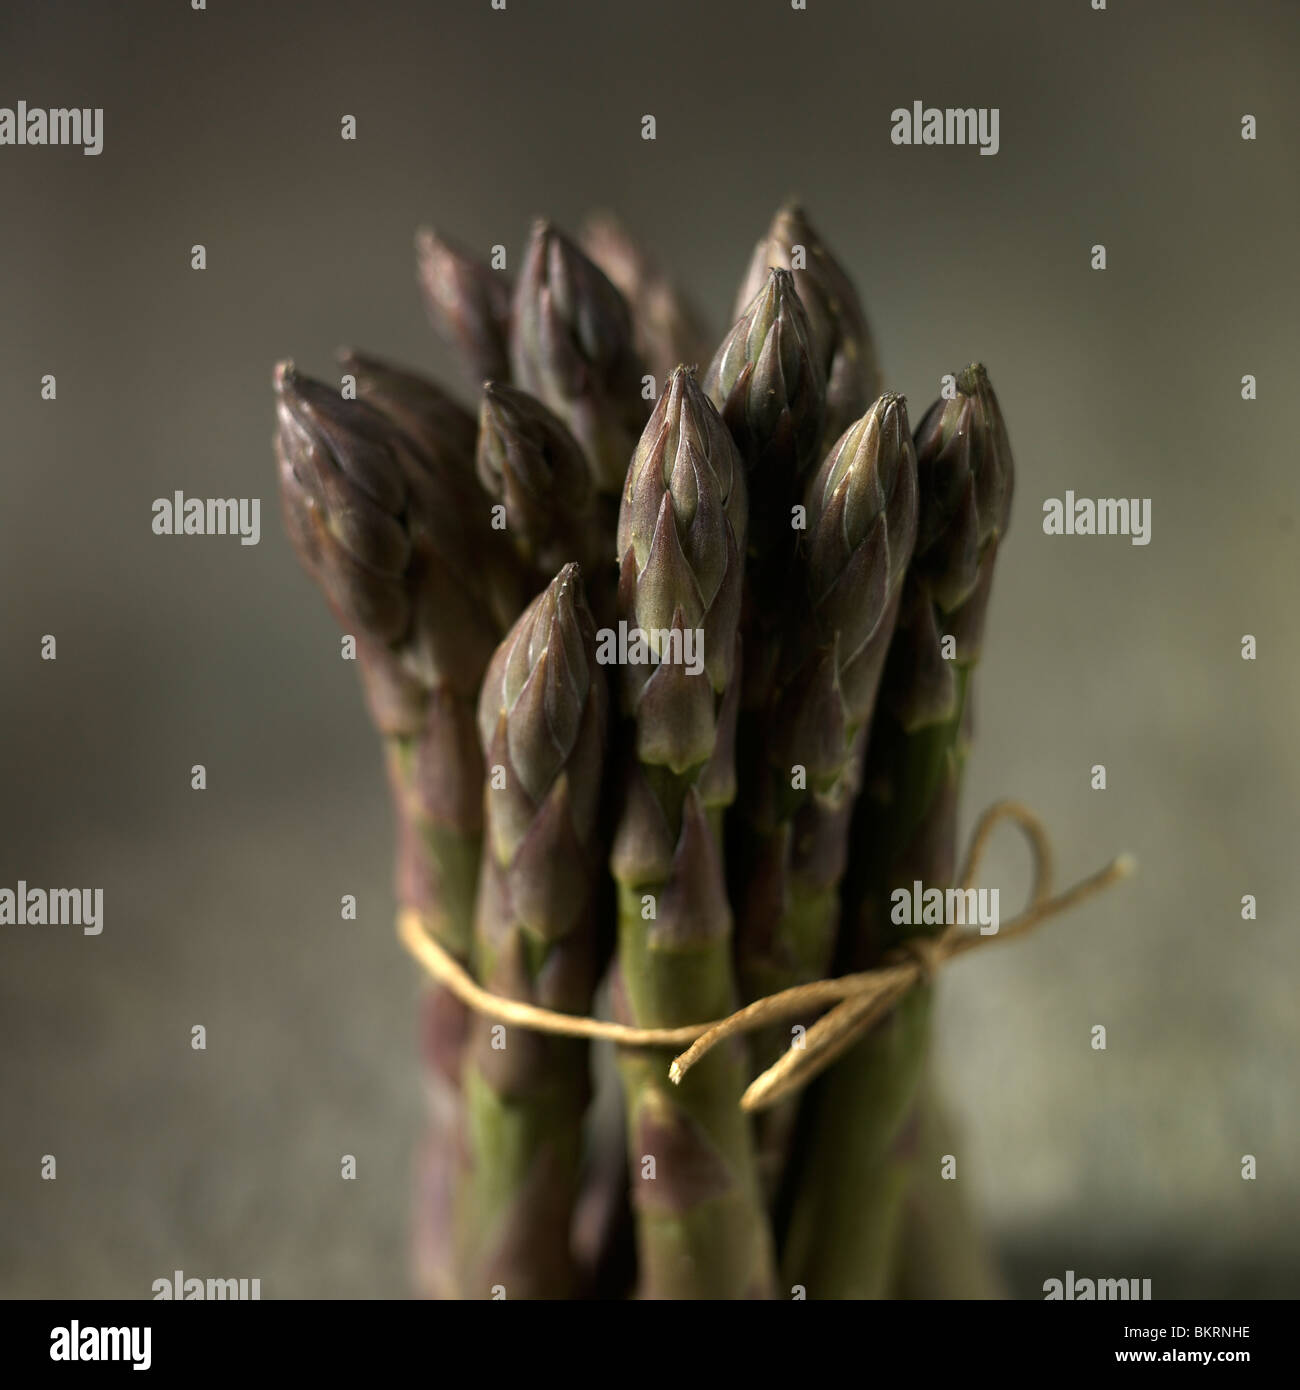 Asparagus bunch dry, tied with string set against moody wooden background. - Stock Image